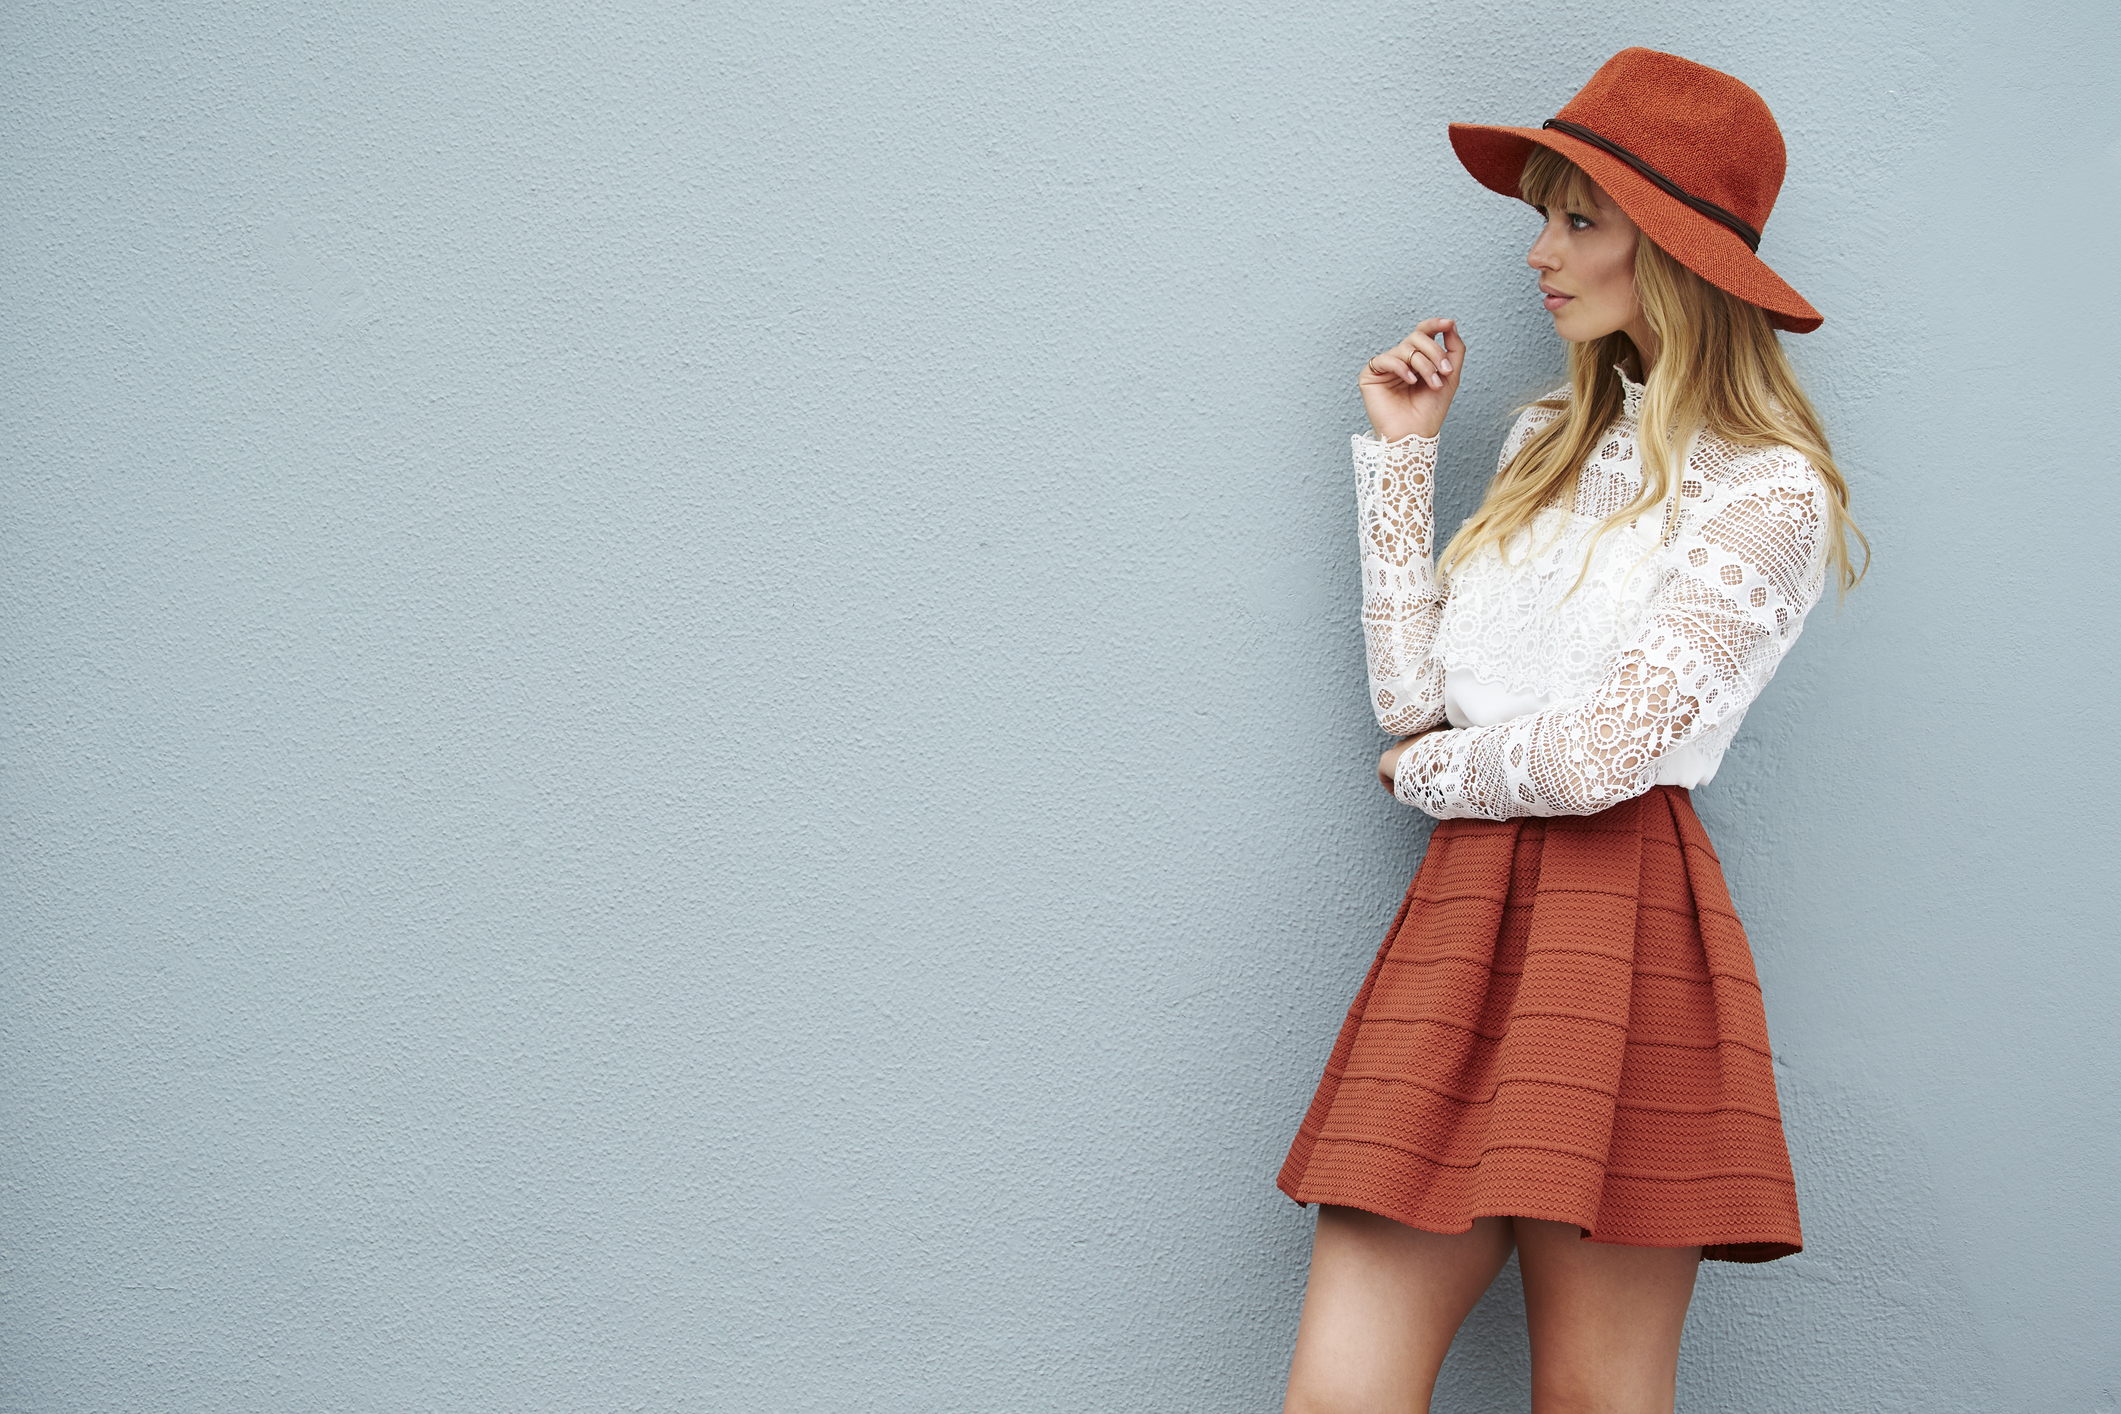 a0c8ce5e6e Complete Guide to Skirt Styles | LoveToKnow